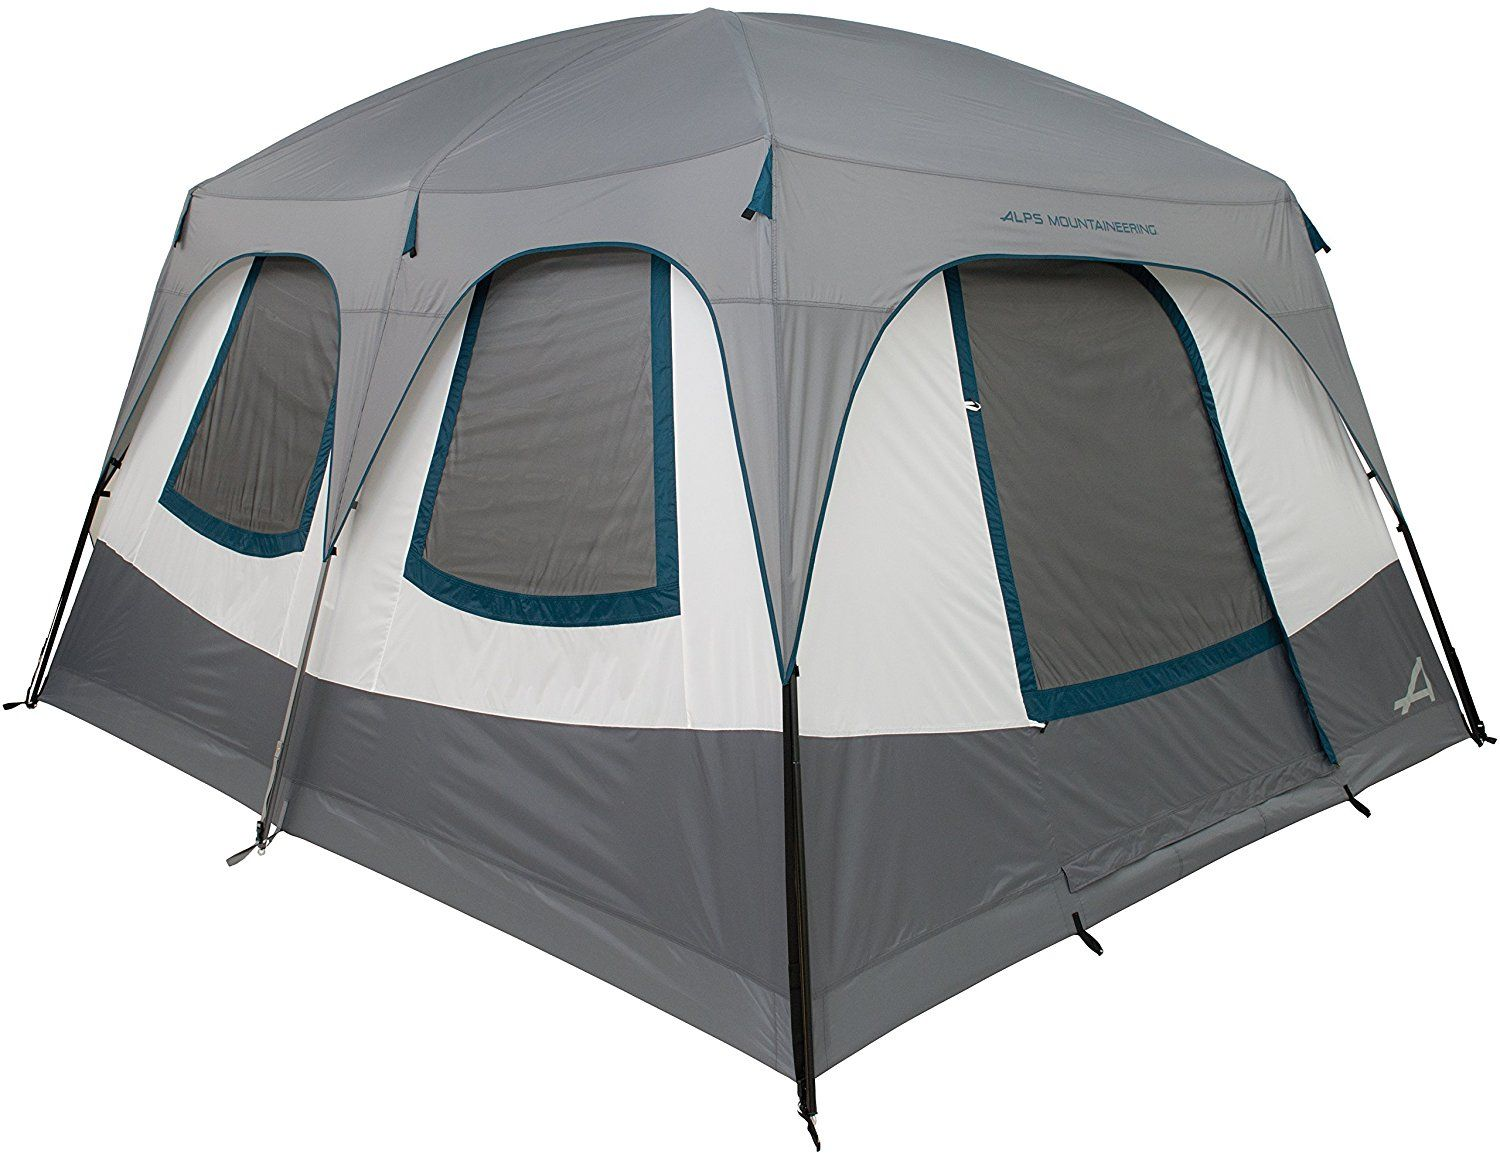 ALPS Mountaineering C& Creek 6 Two Room Tent 6-Person 3-Season Tent  sc 1 st  Pinterest : 6 room tent - memphite.com